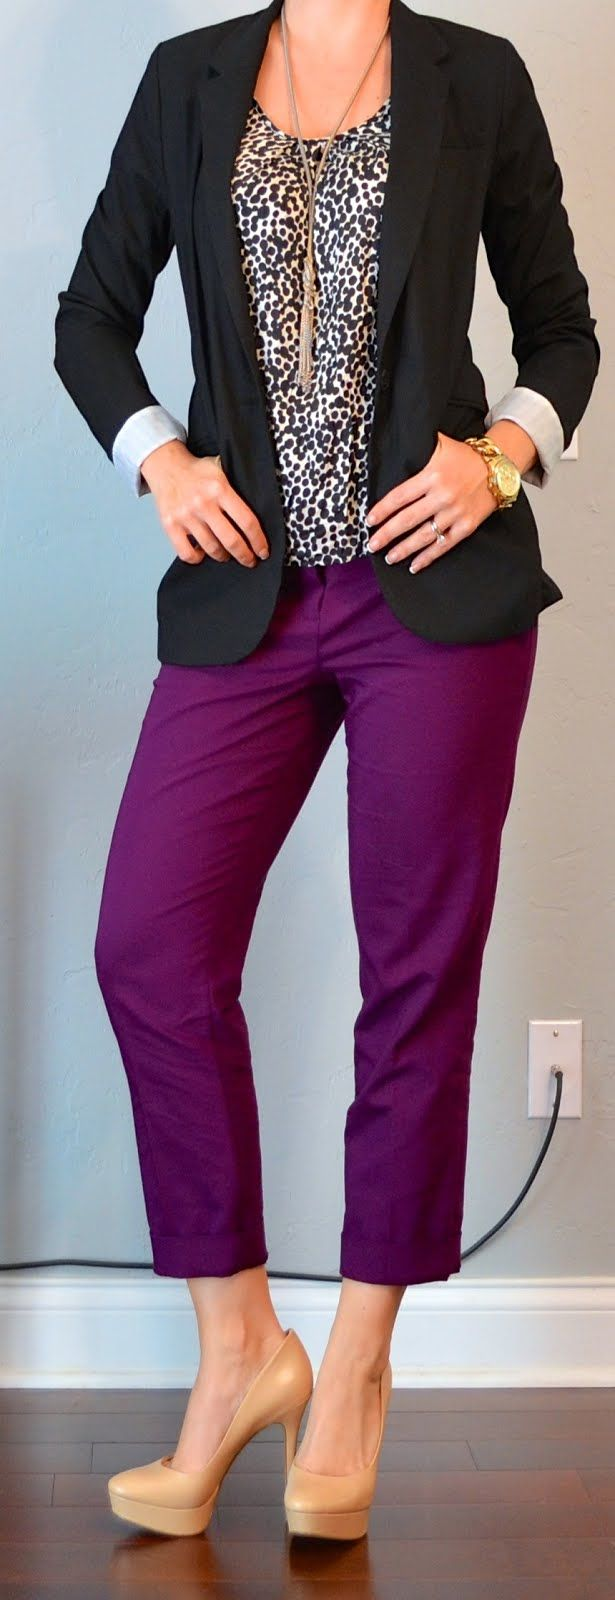 outfit post: black blazer, polkadot blouse, purple cropped pant